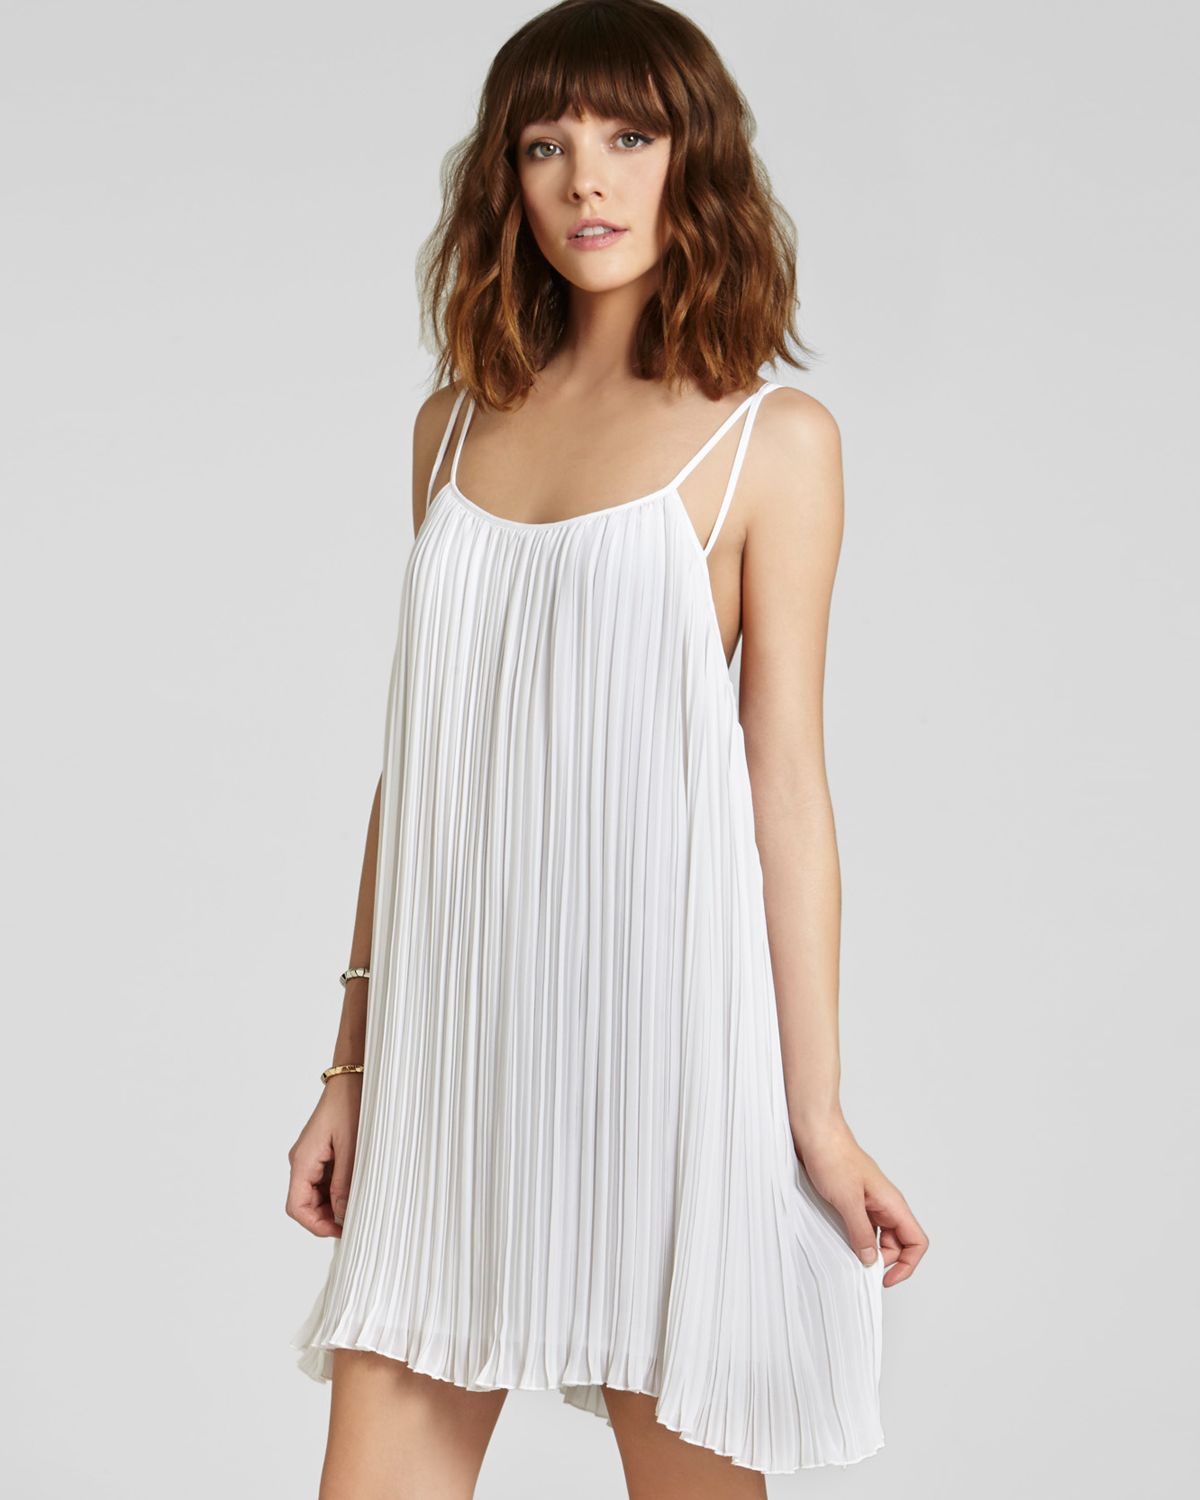 d86c0c40124 BCBGeneration Dress Strappy Pleated in White - Lyst